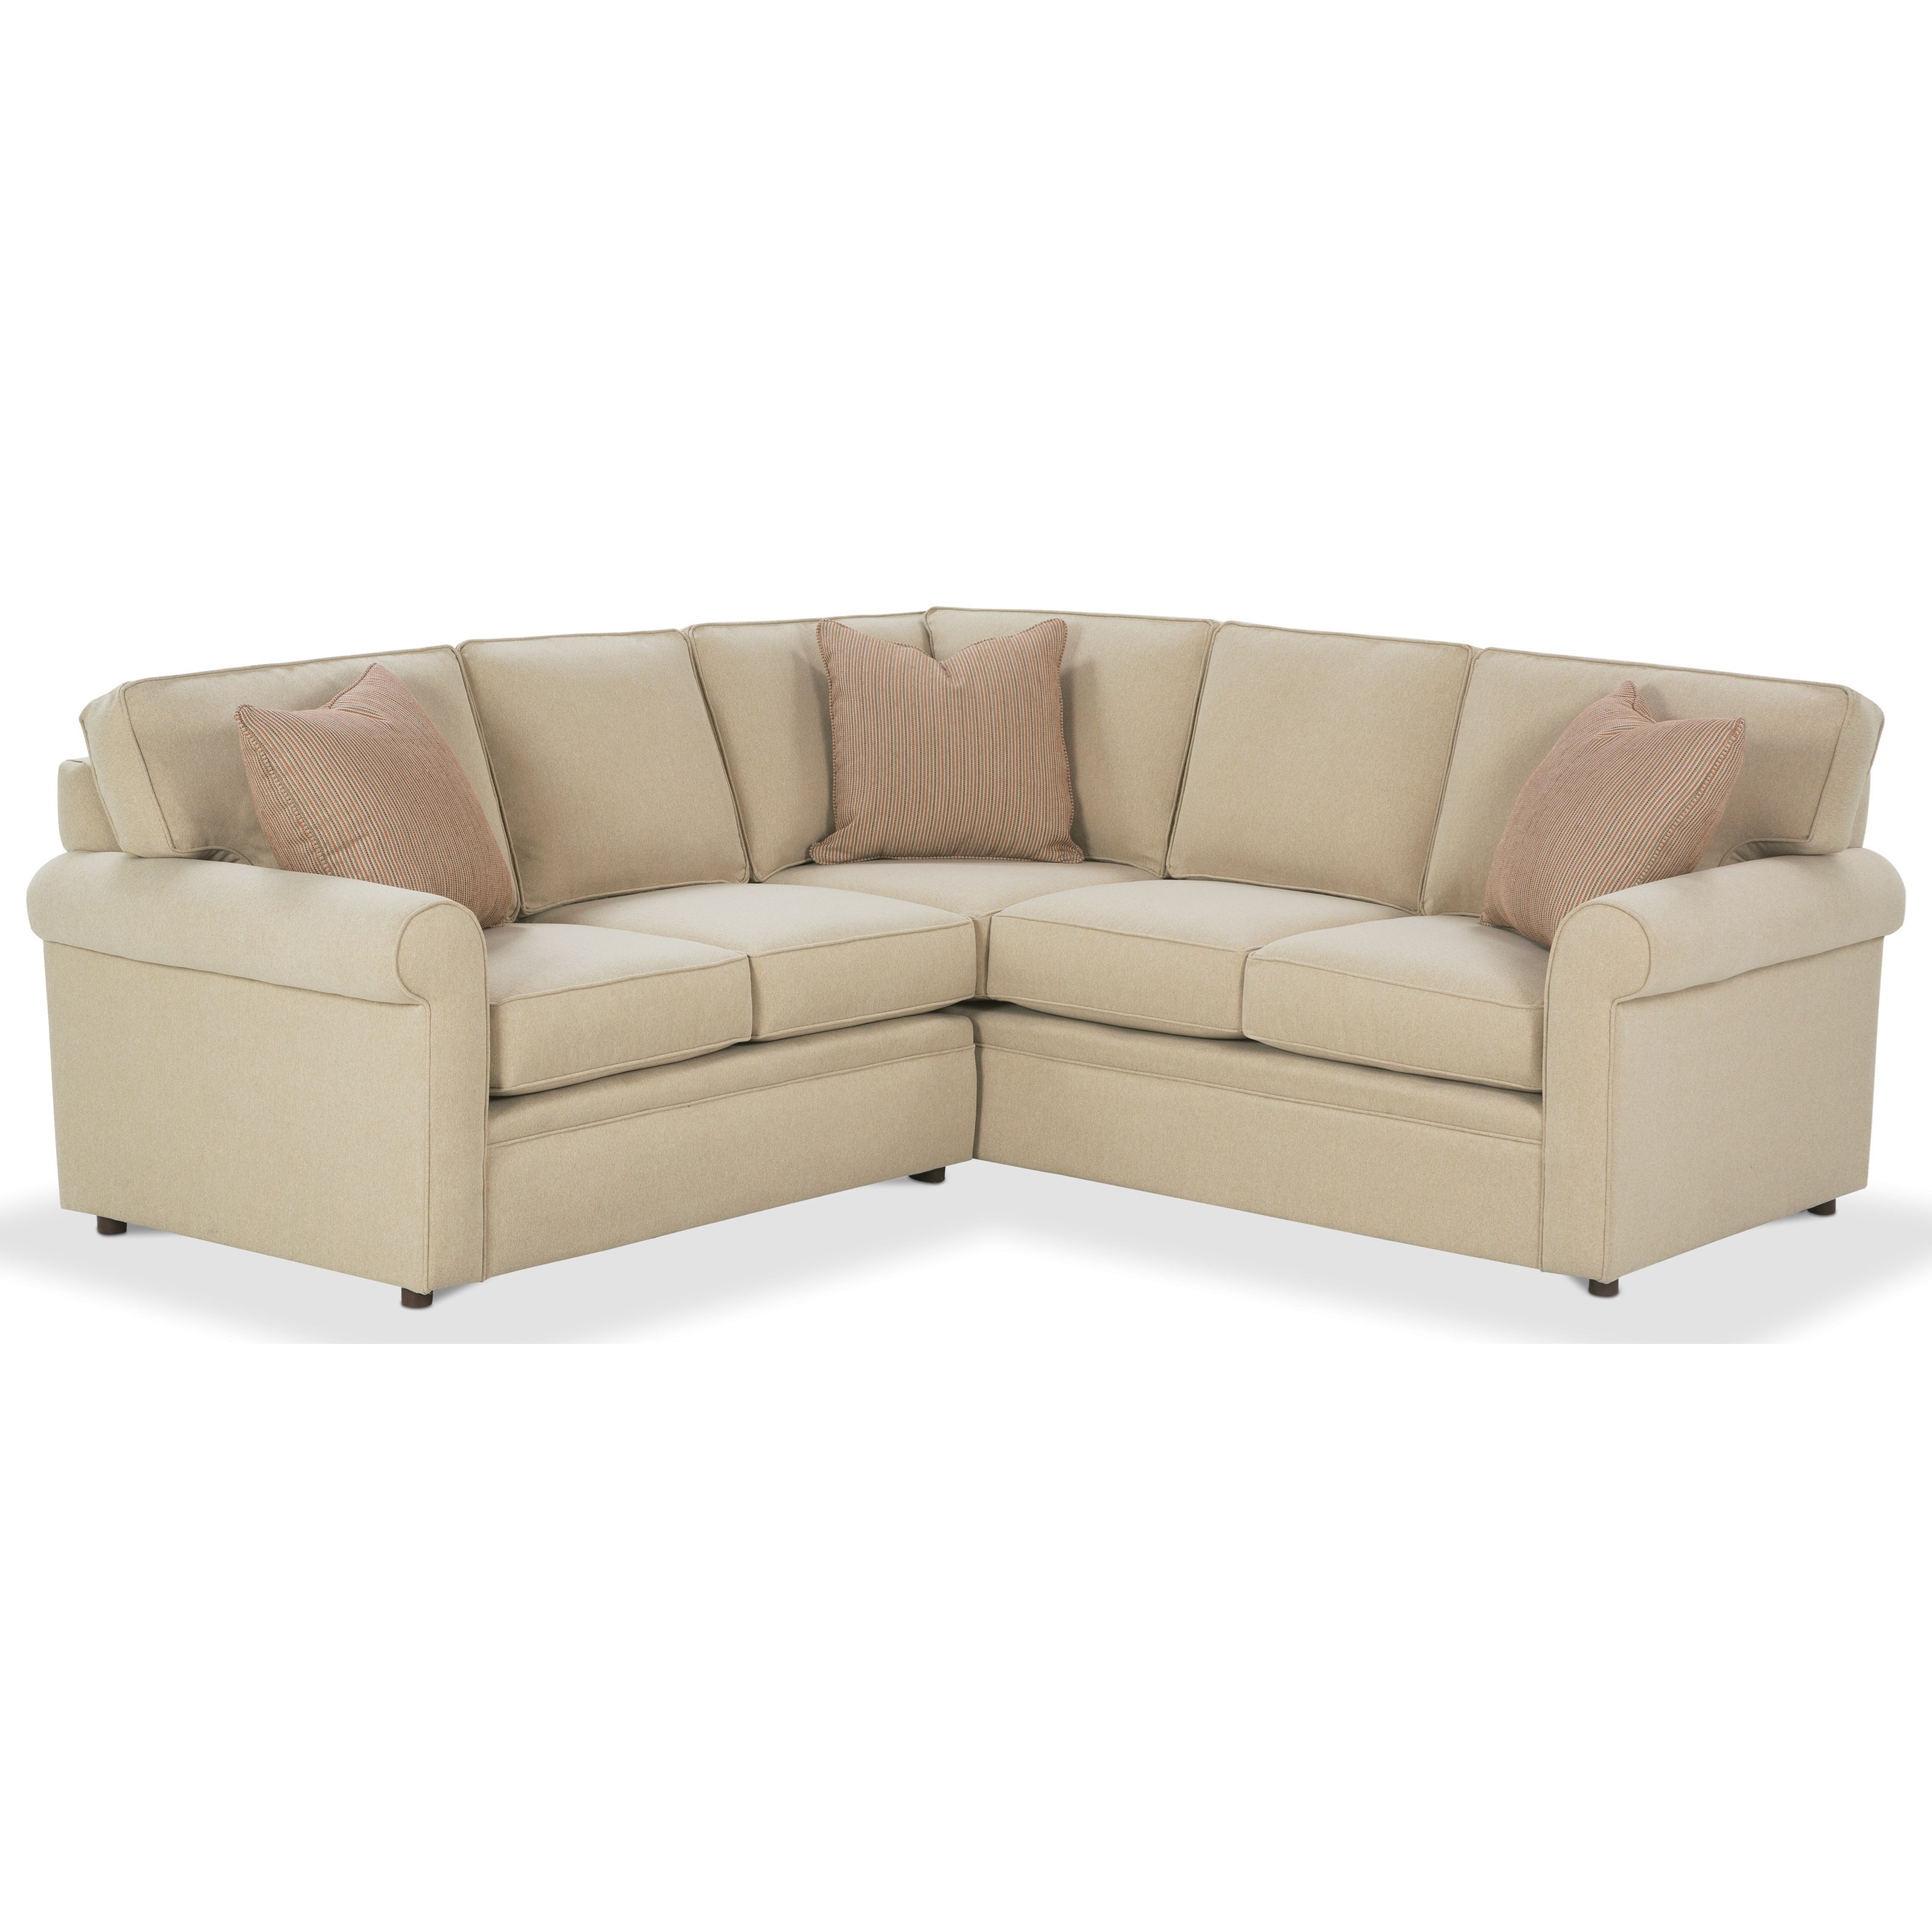 Rowe Brentwood Rolled Arm Sectional Sofa Johnny Janosik Sectional Sofas